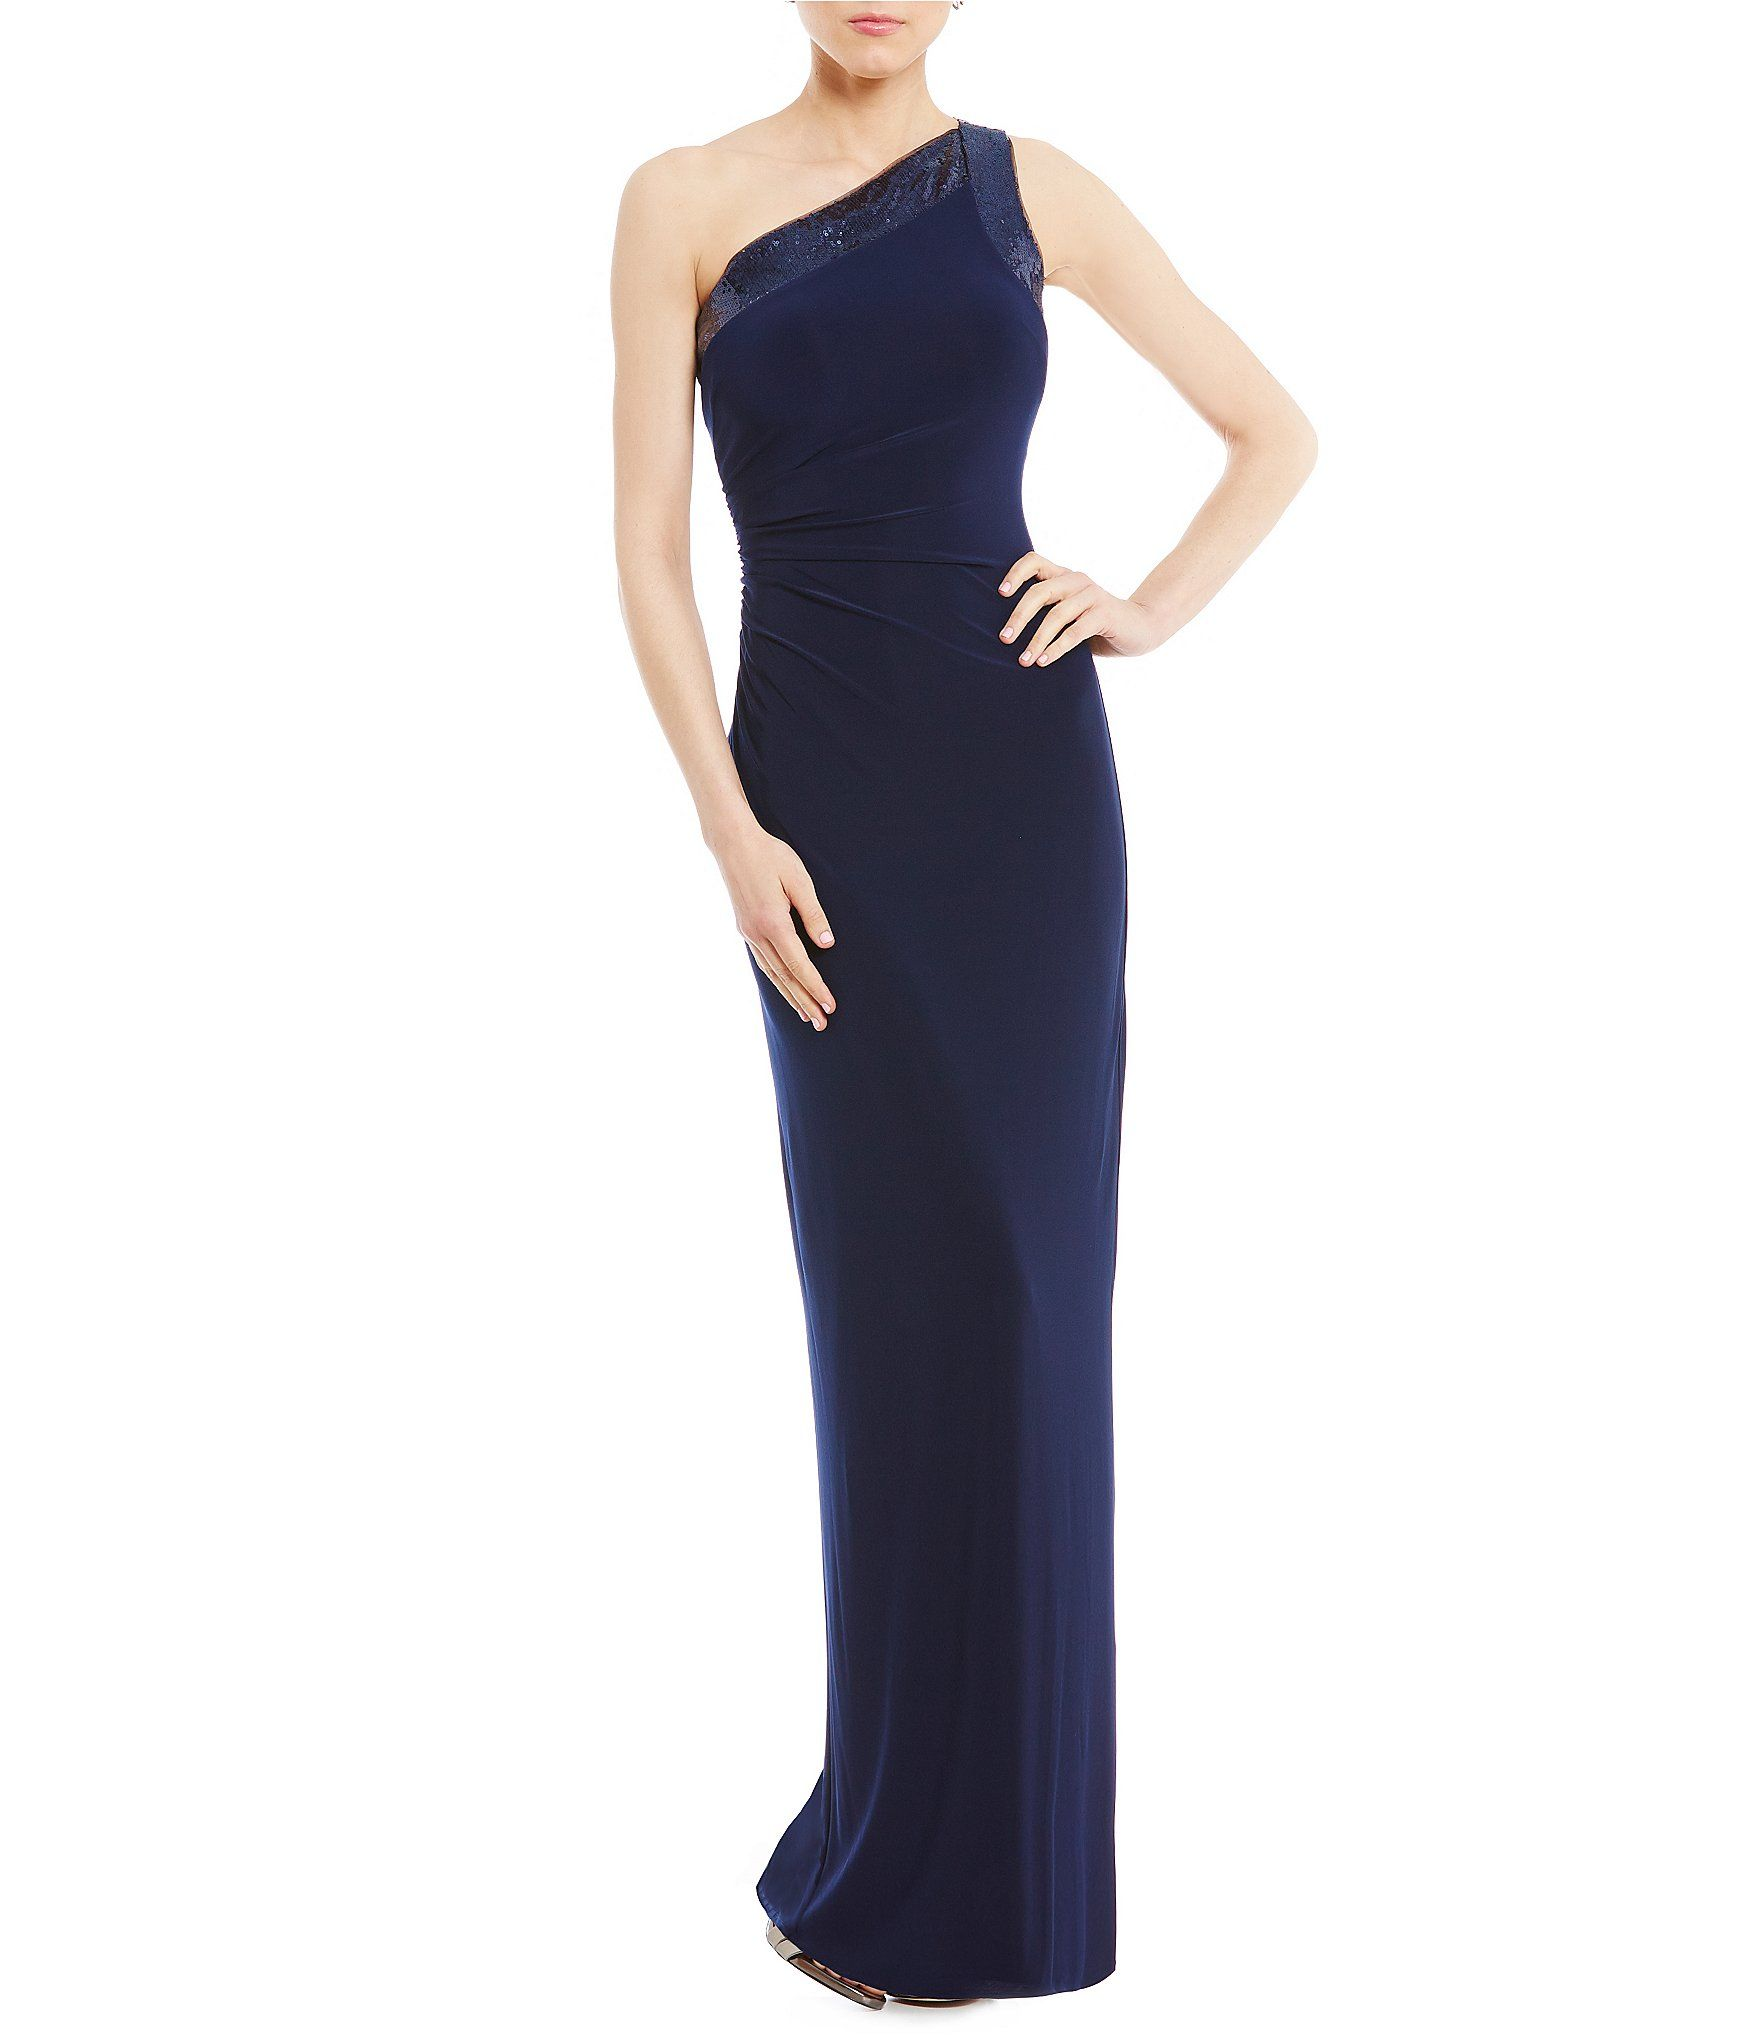 Vince Camuto One Shoulder Sequin Gown #Dillards | MOB style ...